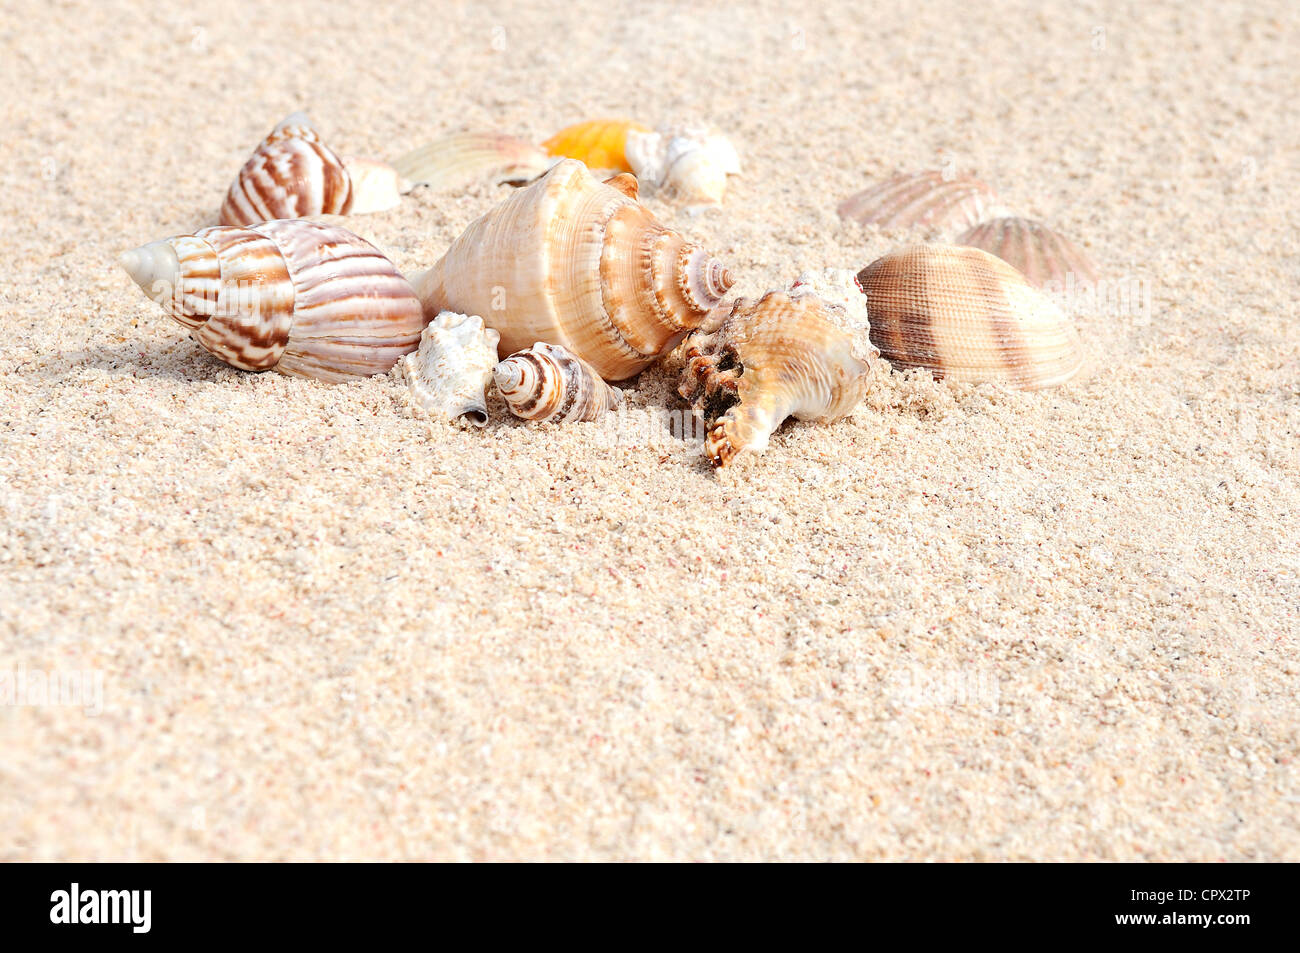 sea shells with sand as background - Stock Image